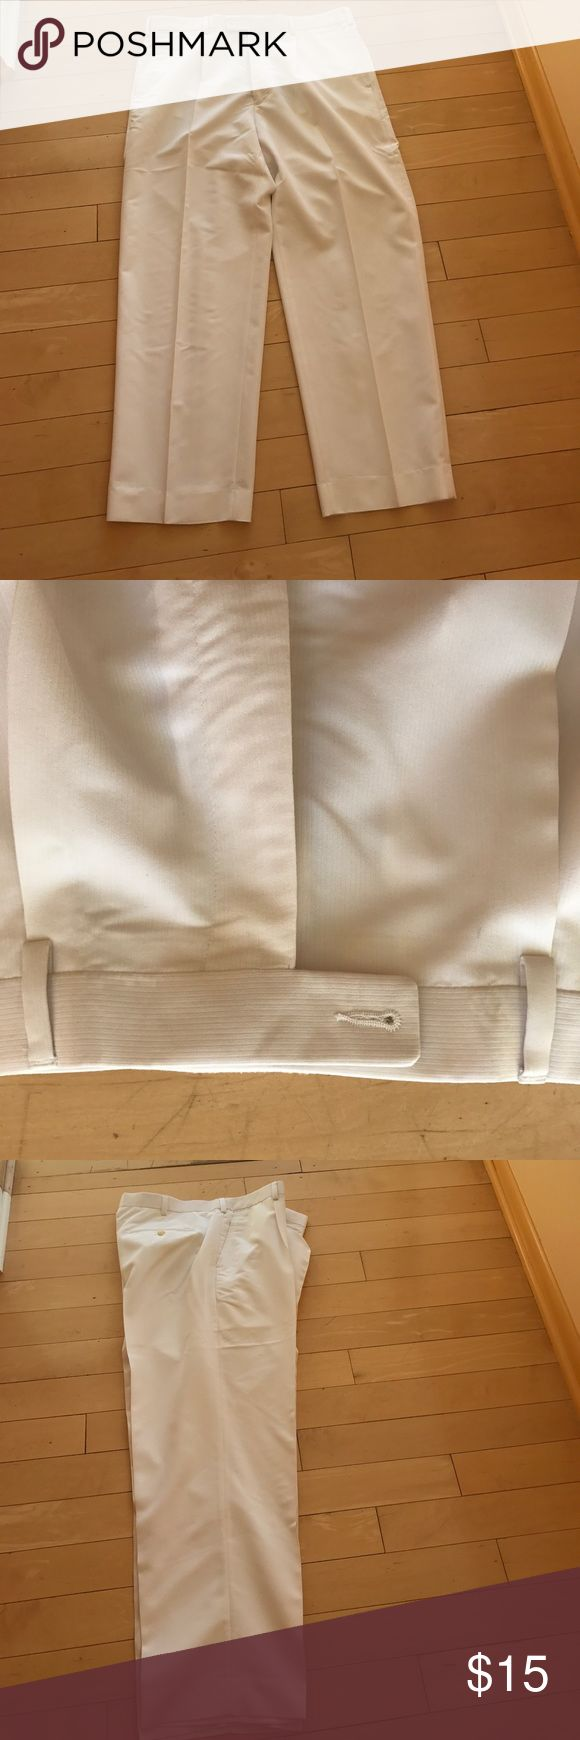 CUBAVERA Cruise or resortwear. White men's slacks White Men's slacks. Perfect for your summer parties, cocktail hour at a resort or on a cruise. Length 32 Cubavera Pants